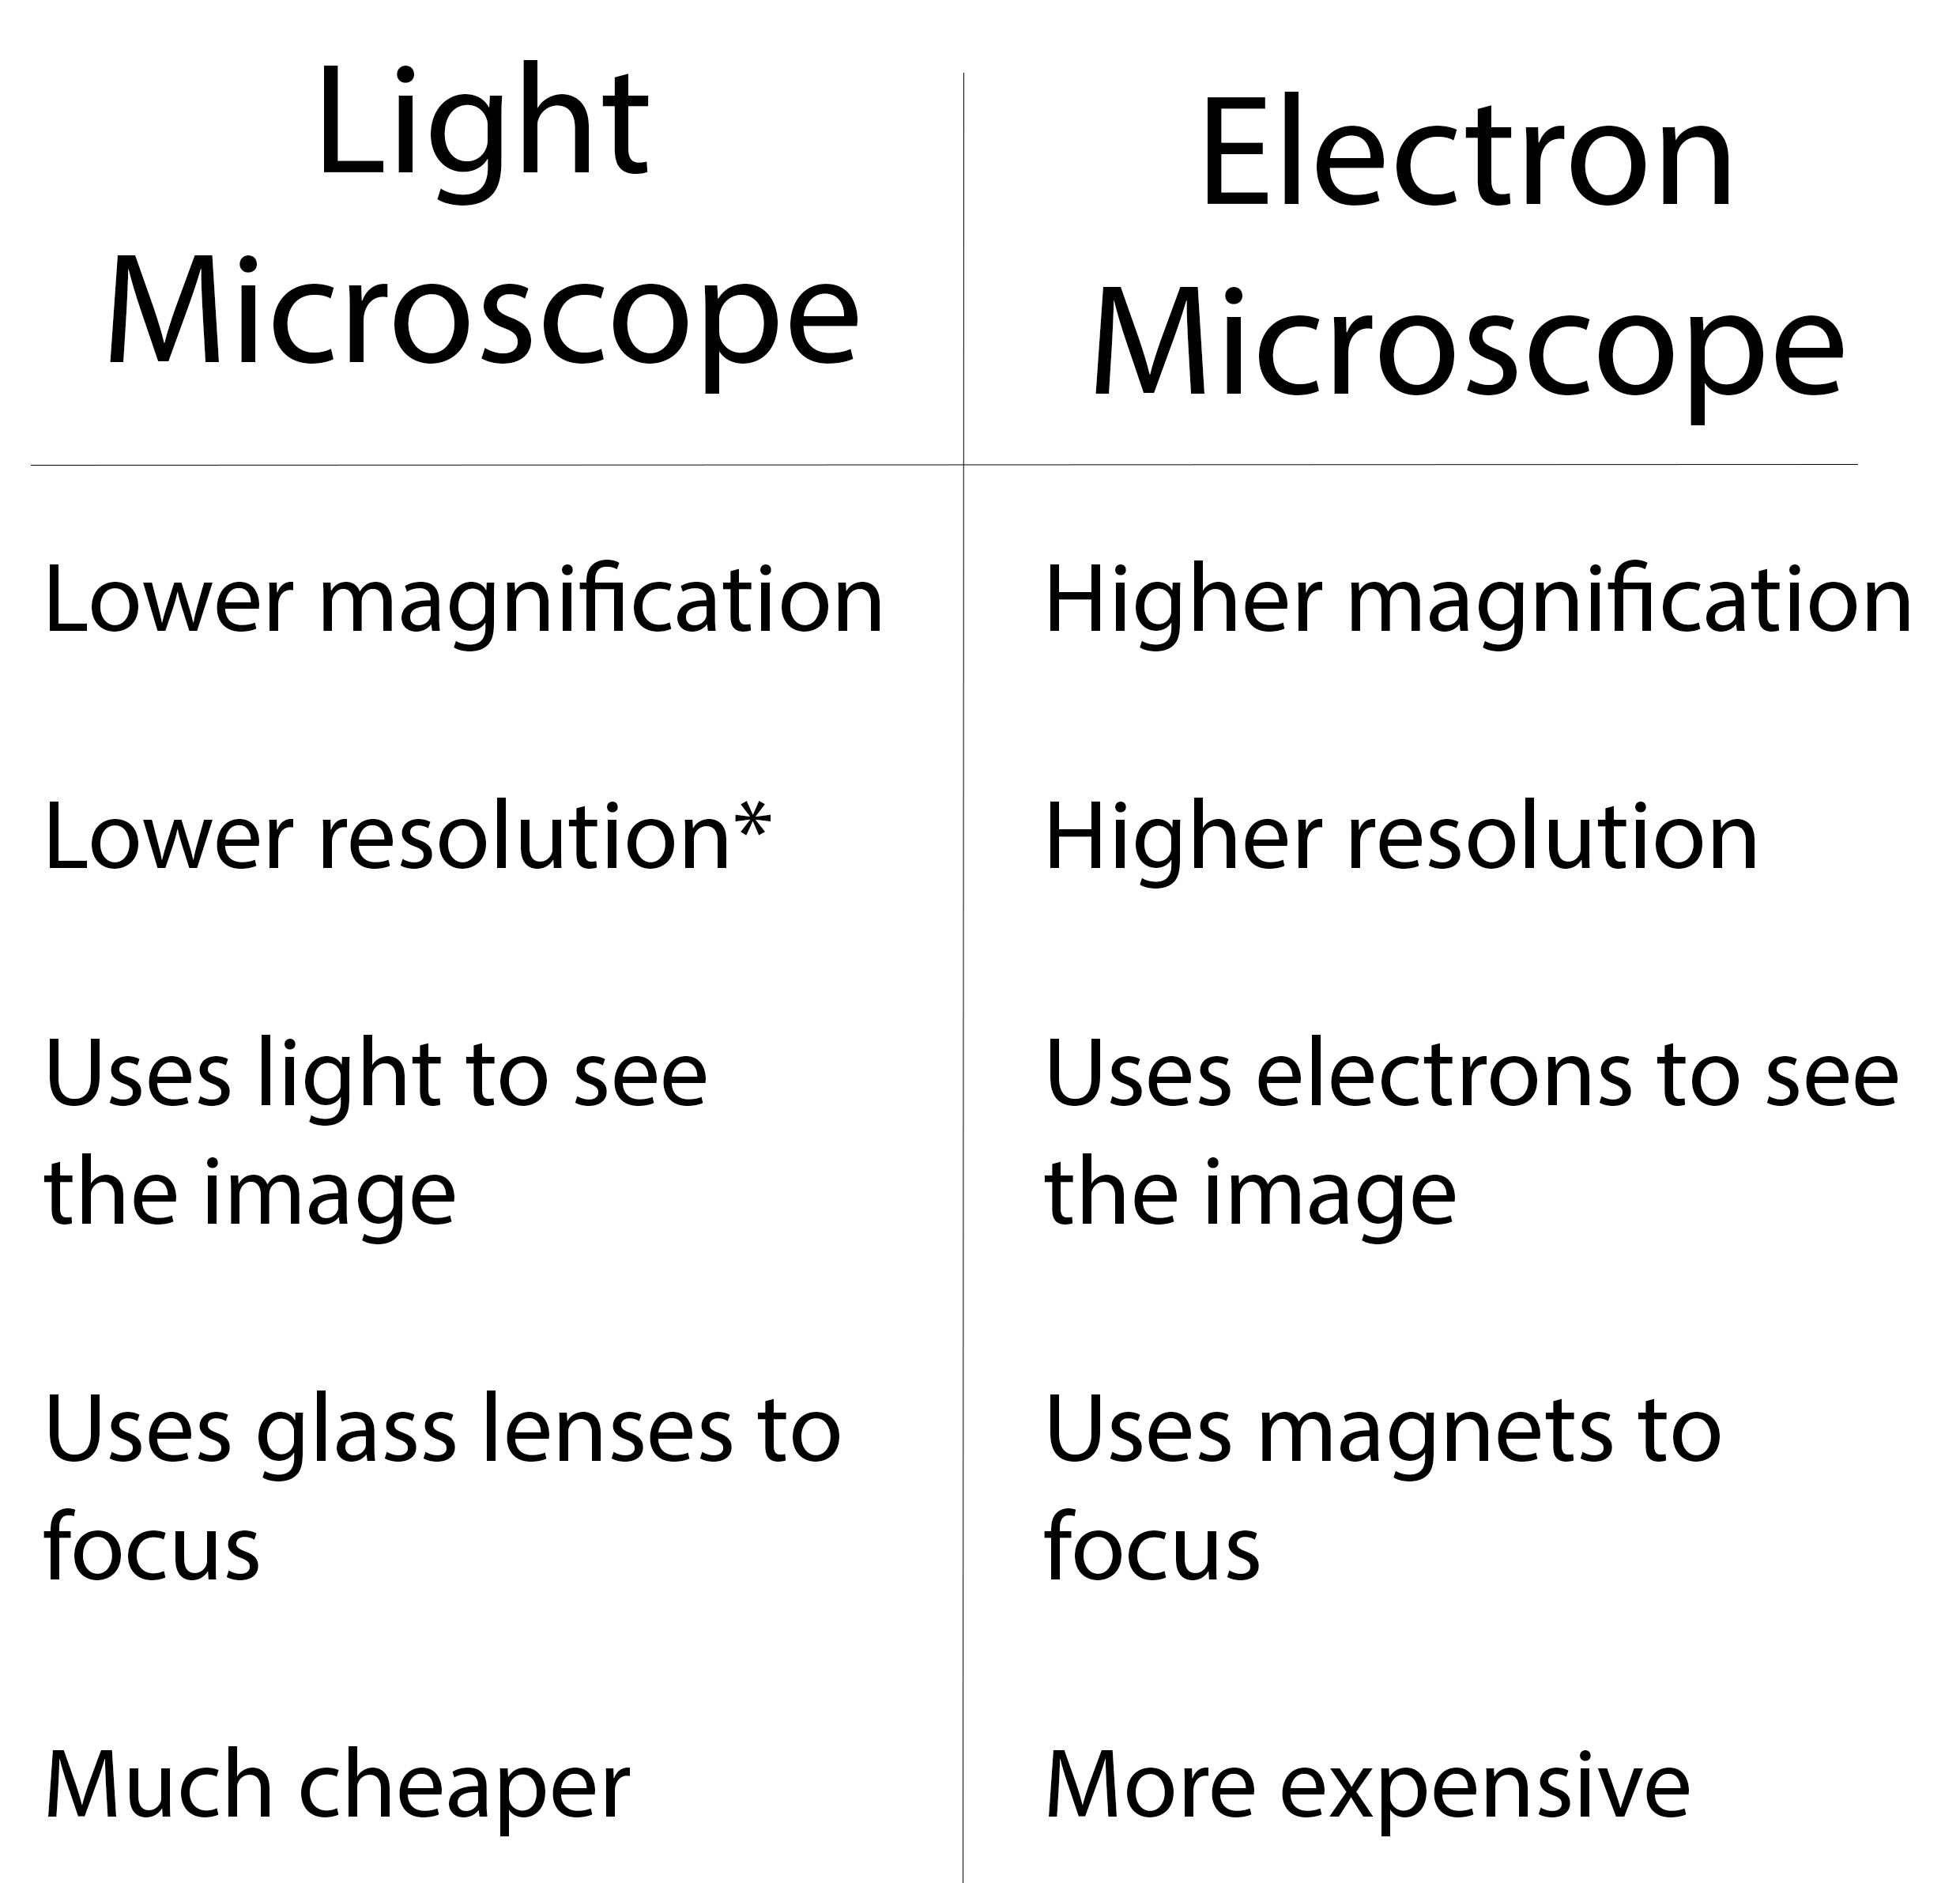 Microscope Table.jpg